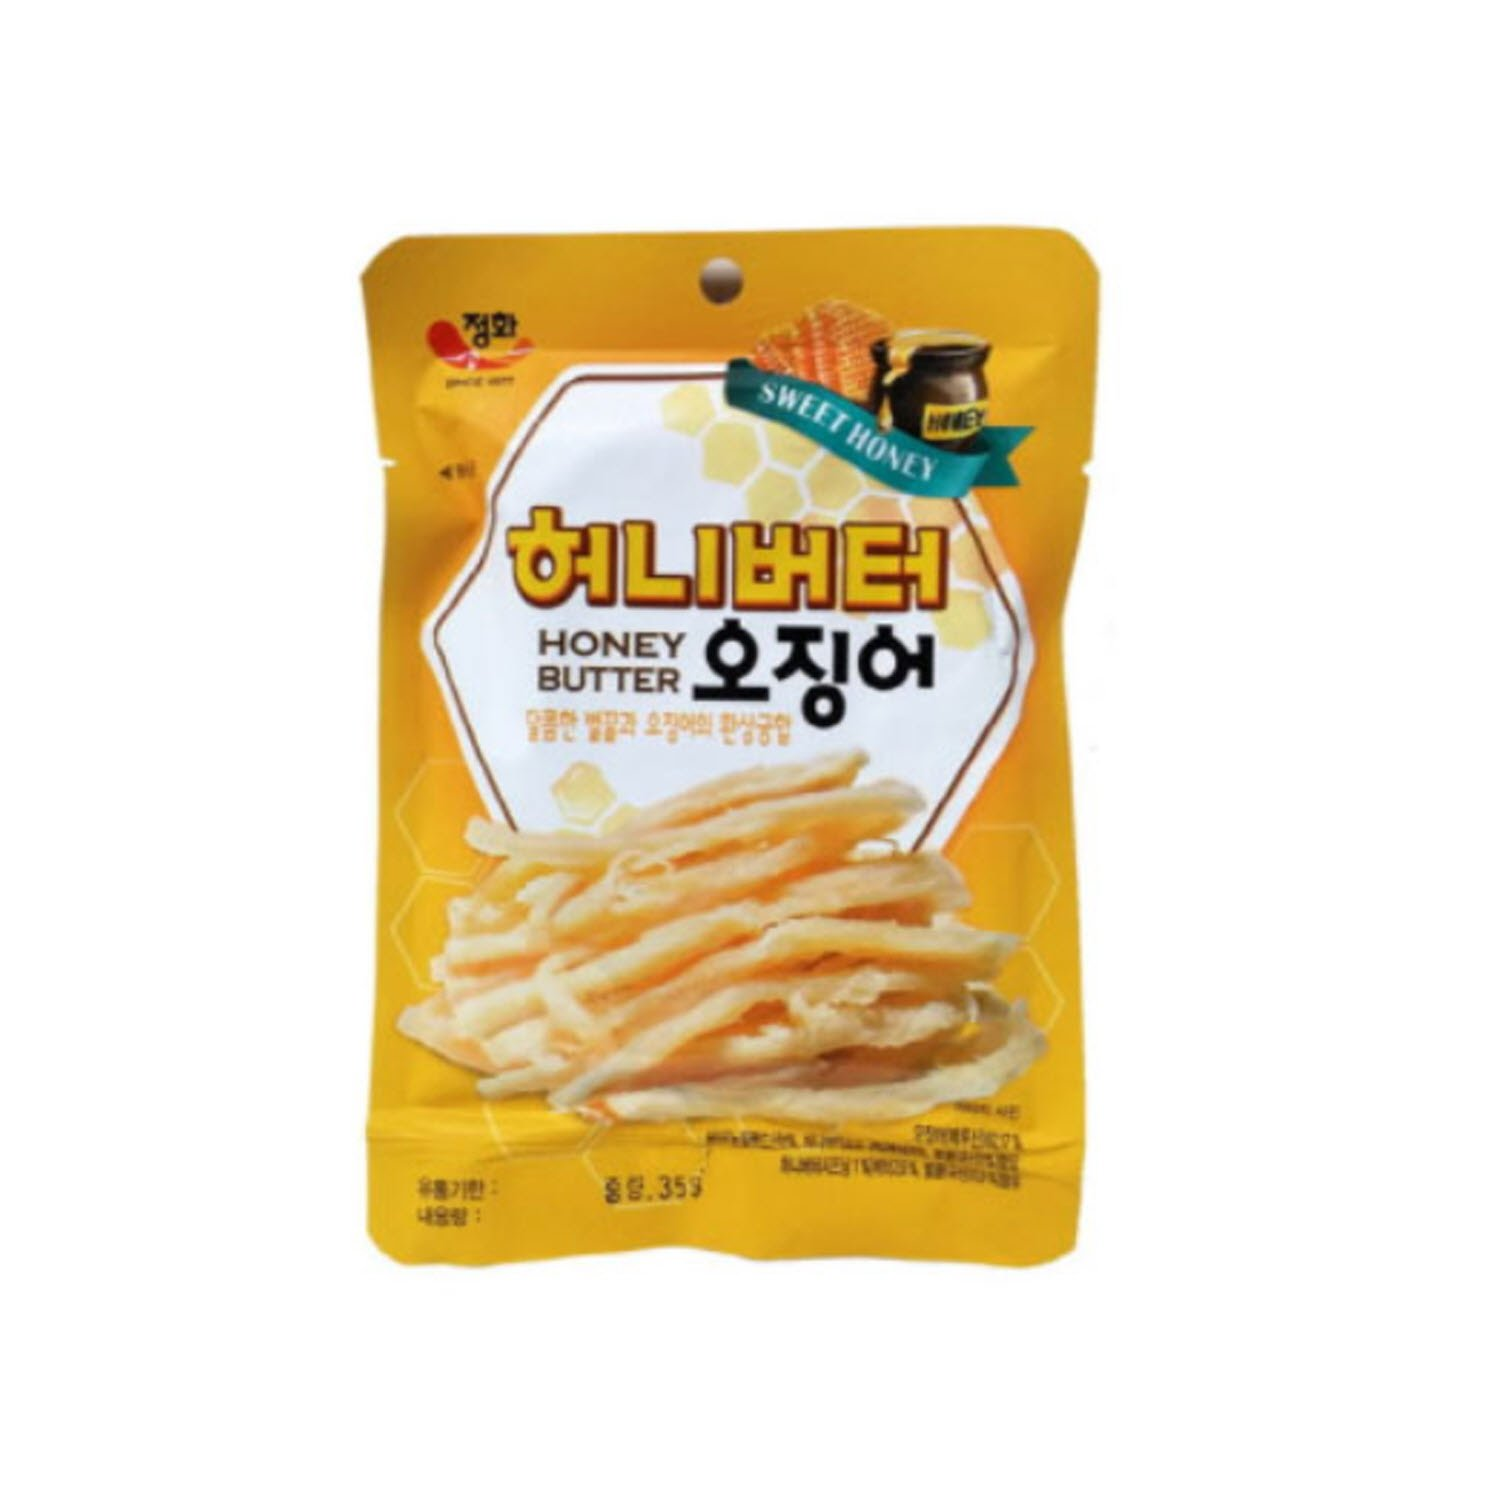 [Jung Hwa] Grilled Honey Butter Squid - 30g x 3 Pack by JUNGHWA